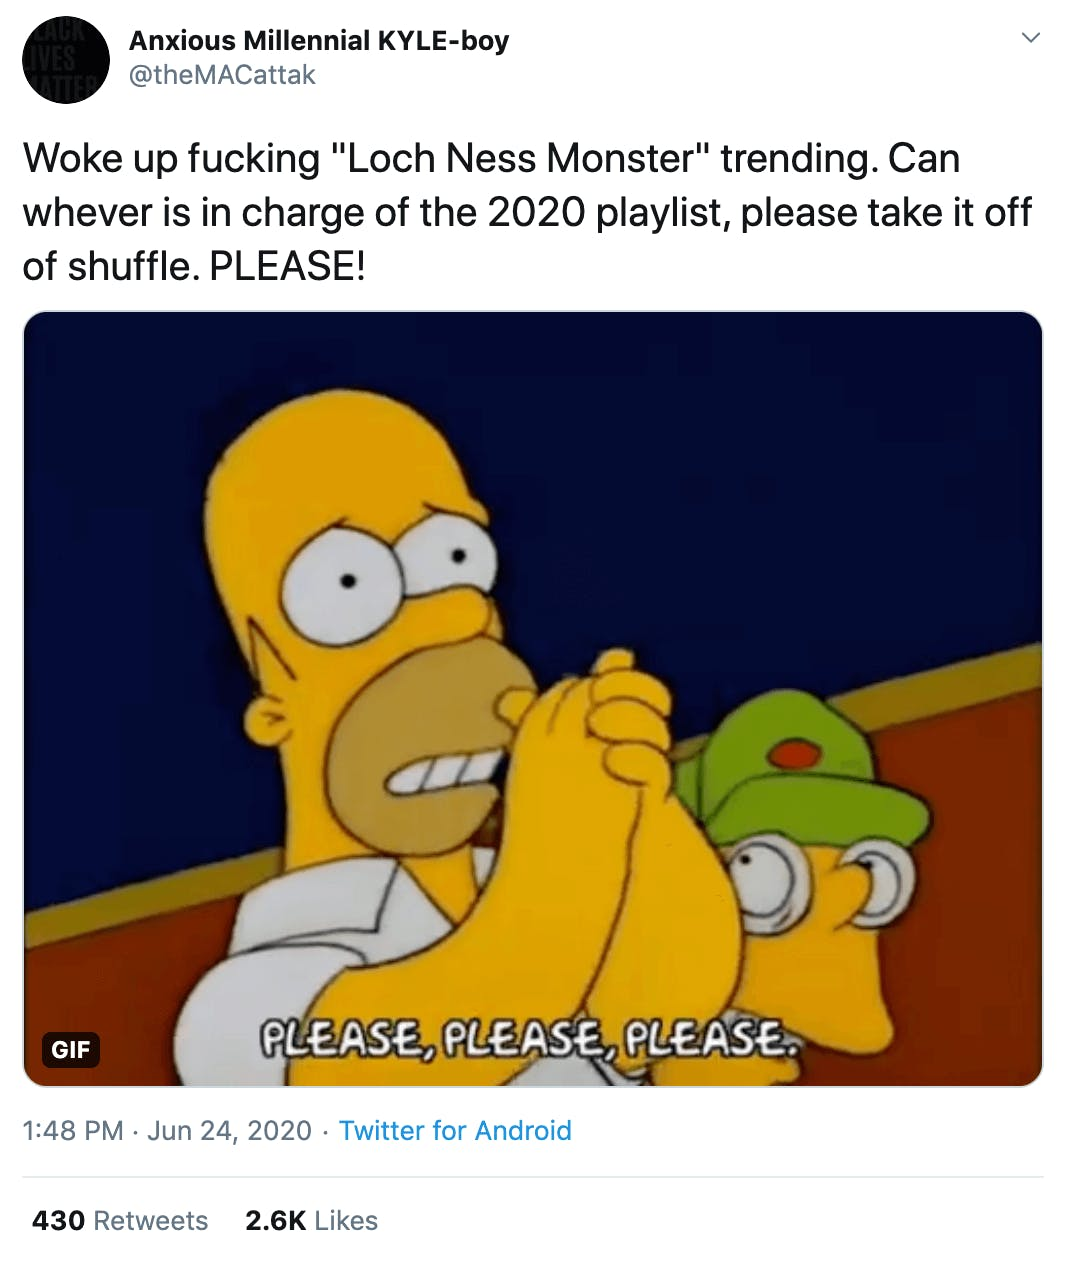 """""""Woke up fucking """"Loch Ness Monster"""" trending. Can whever is in charge of the 2020 playlist, please take it off of shuffle. PLEASE!"""" Gif of Homer Simpson begging"""